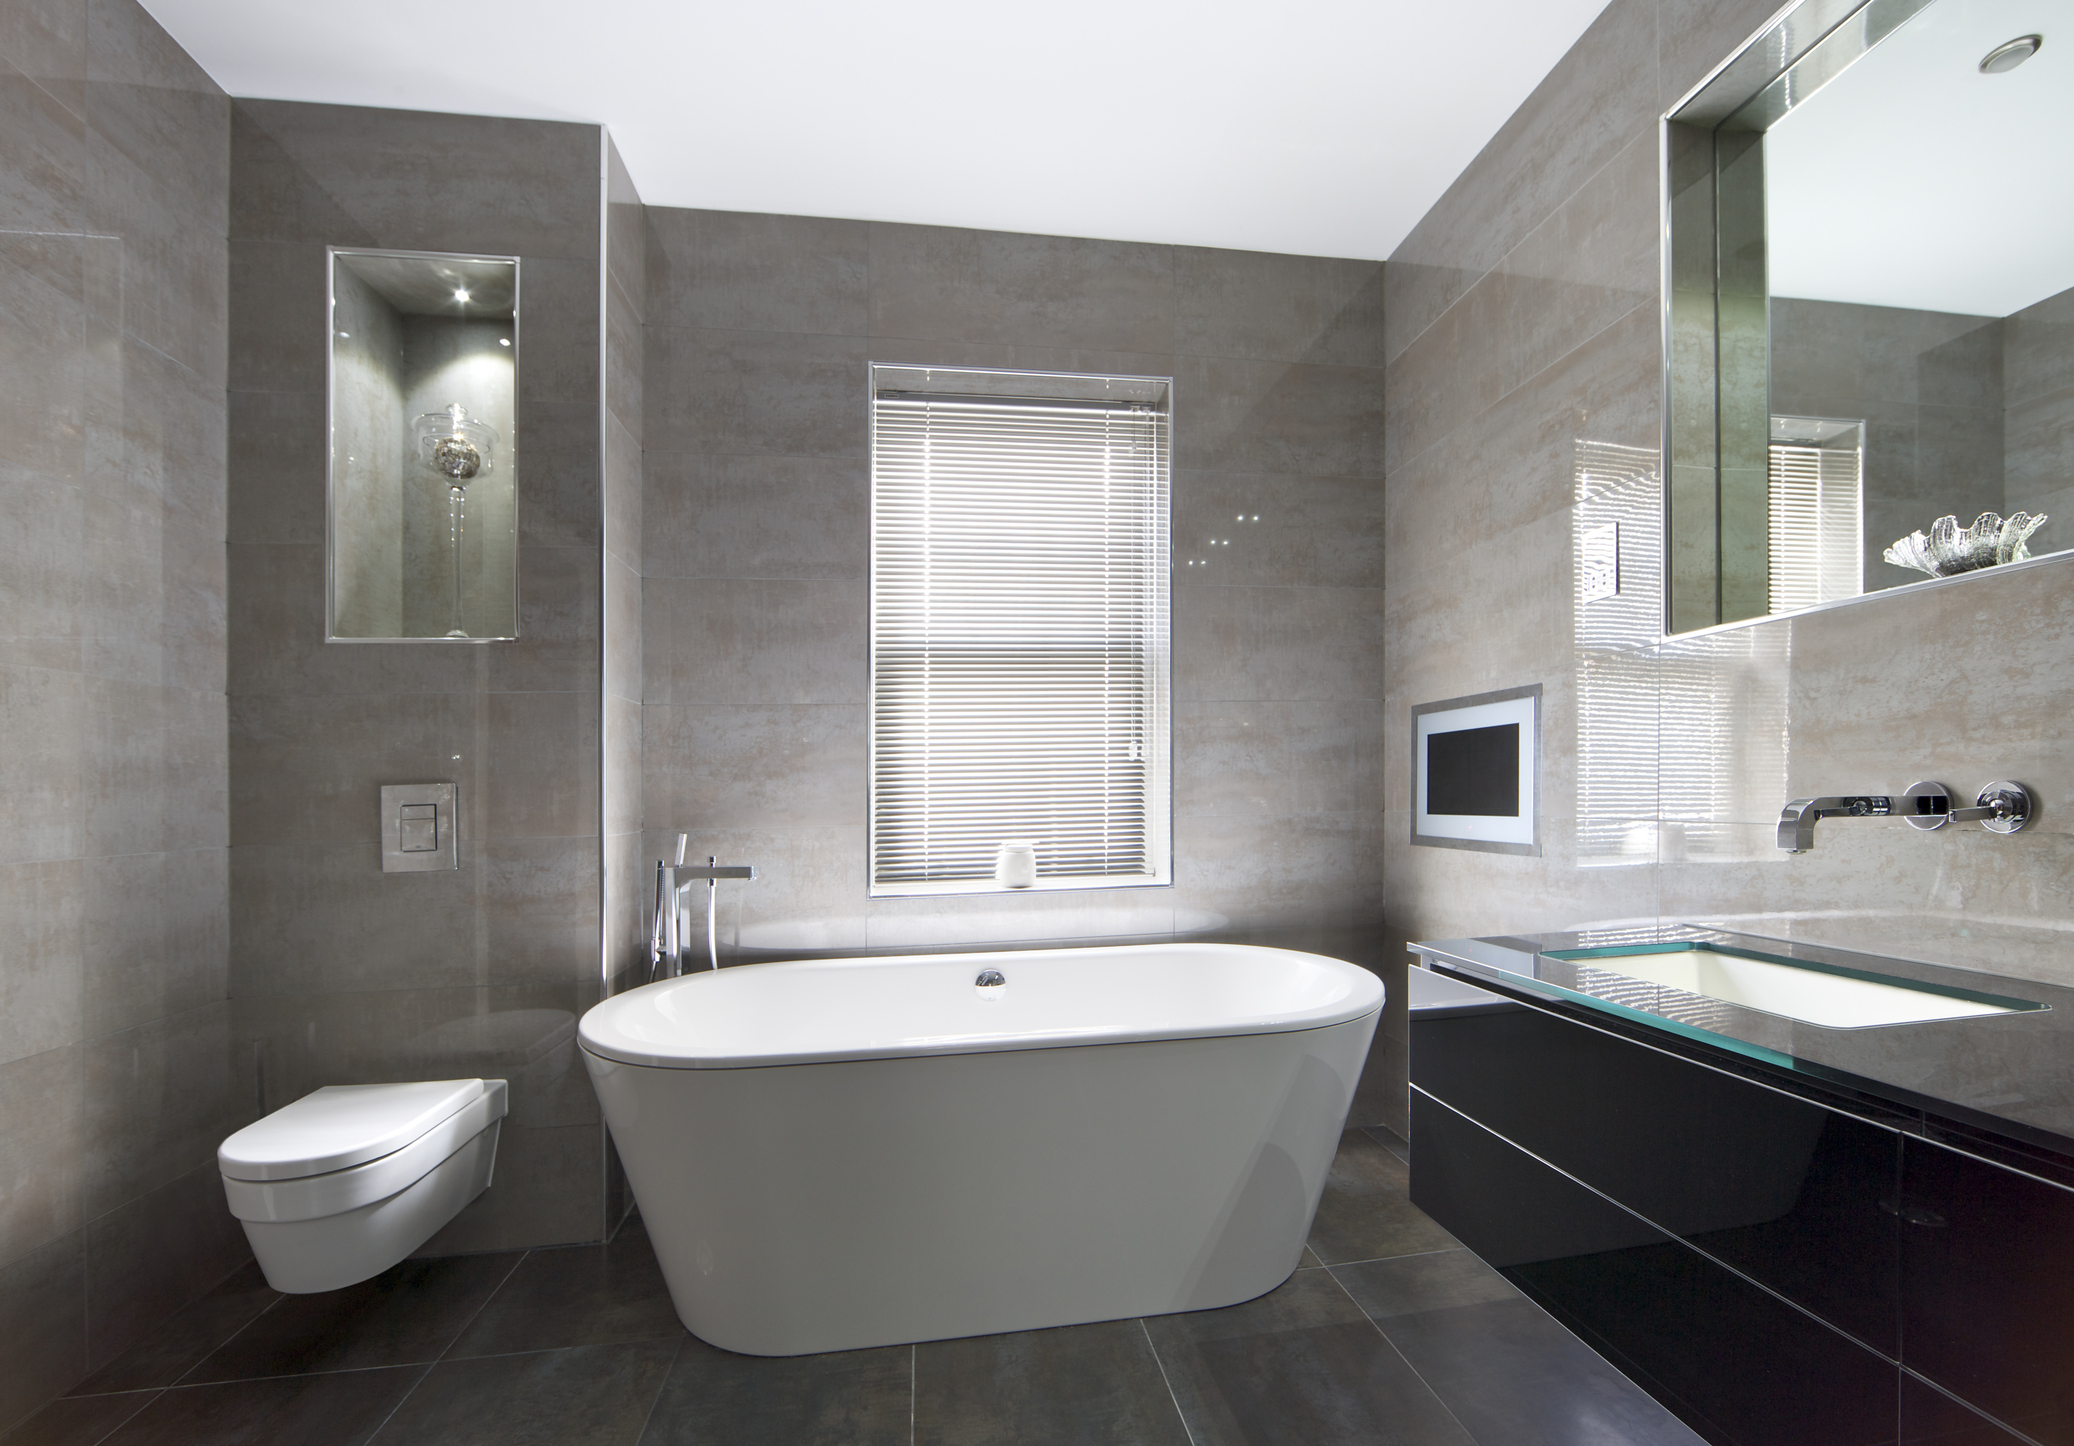 How to Design a Small Bathroom to Look More Spacious